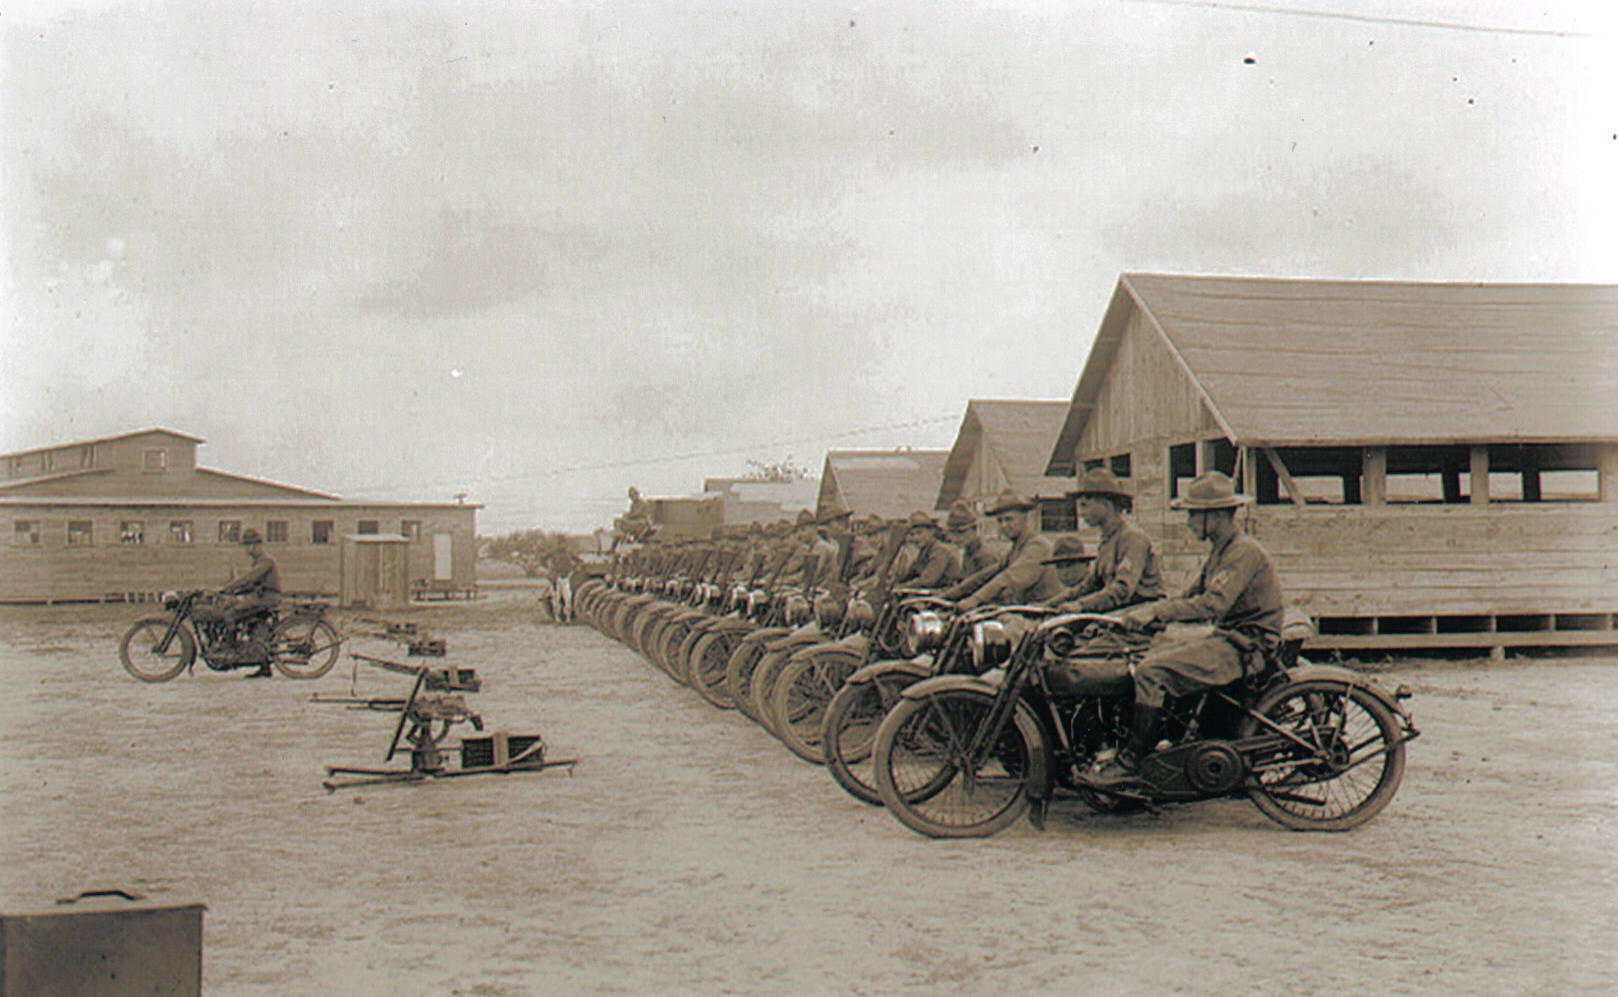 114 Motorcycles Corps